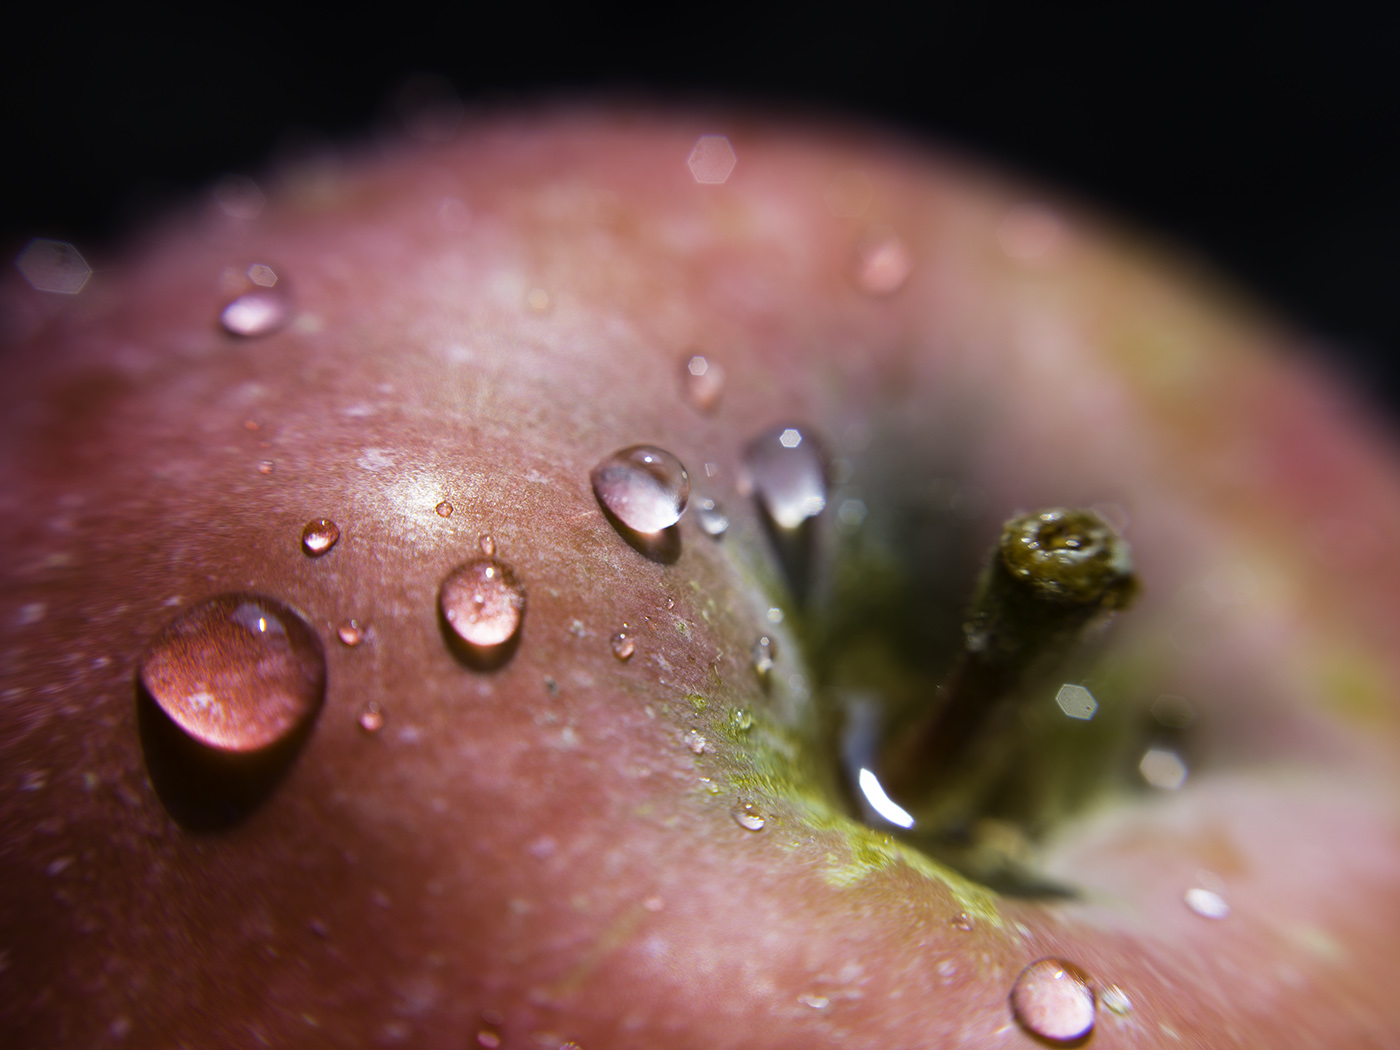 Apple, after rinsing. Macro photo by Andrée Fredette